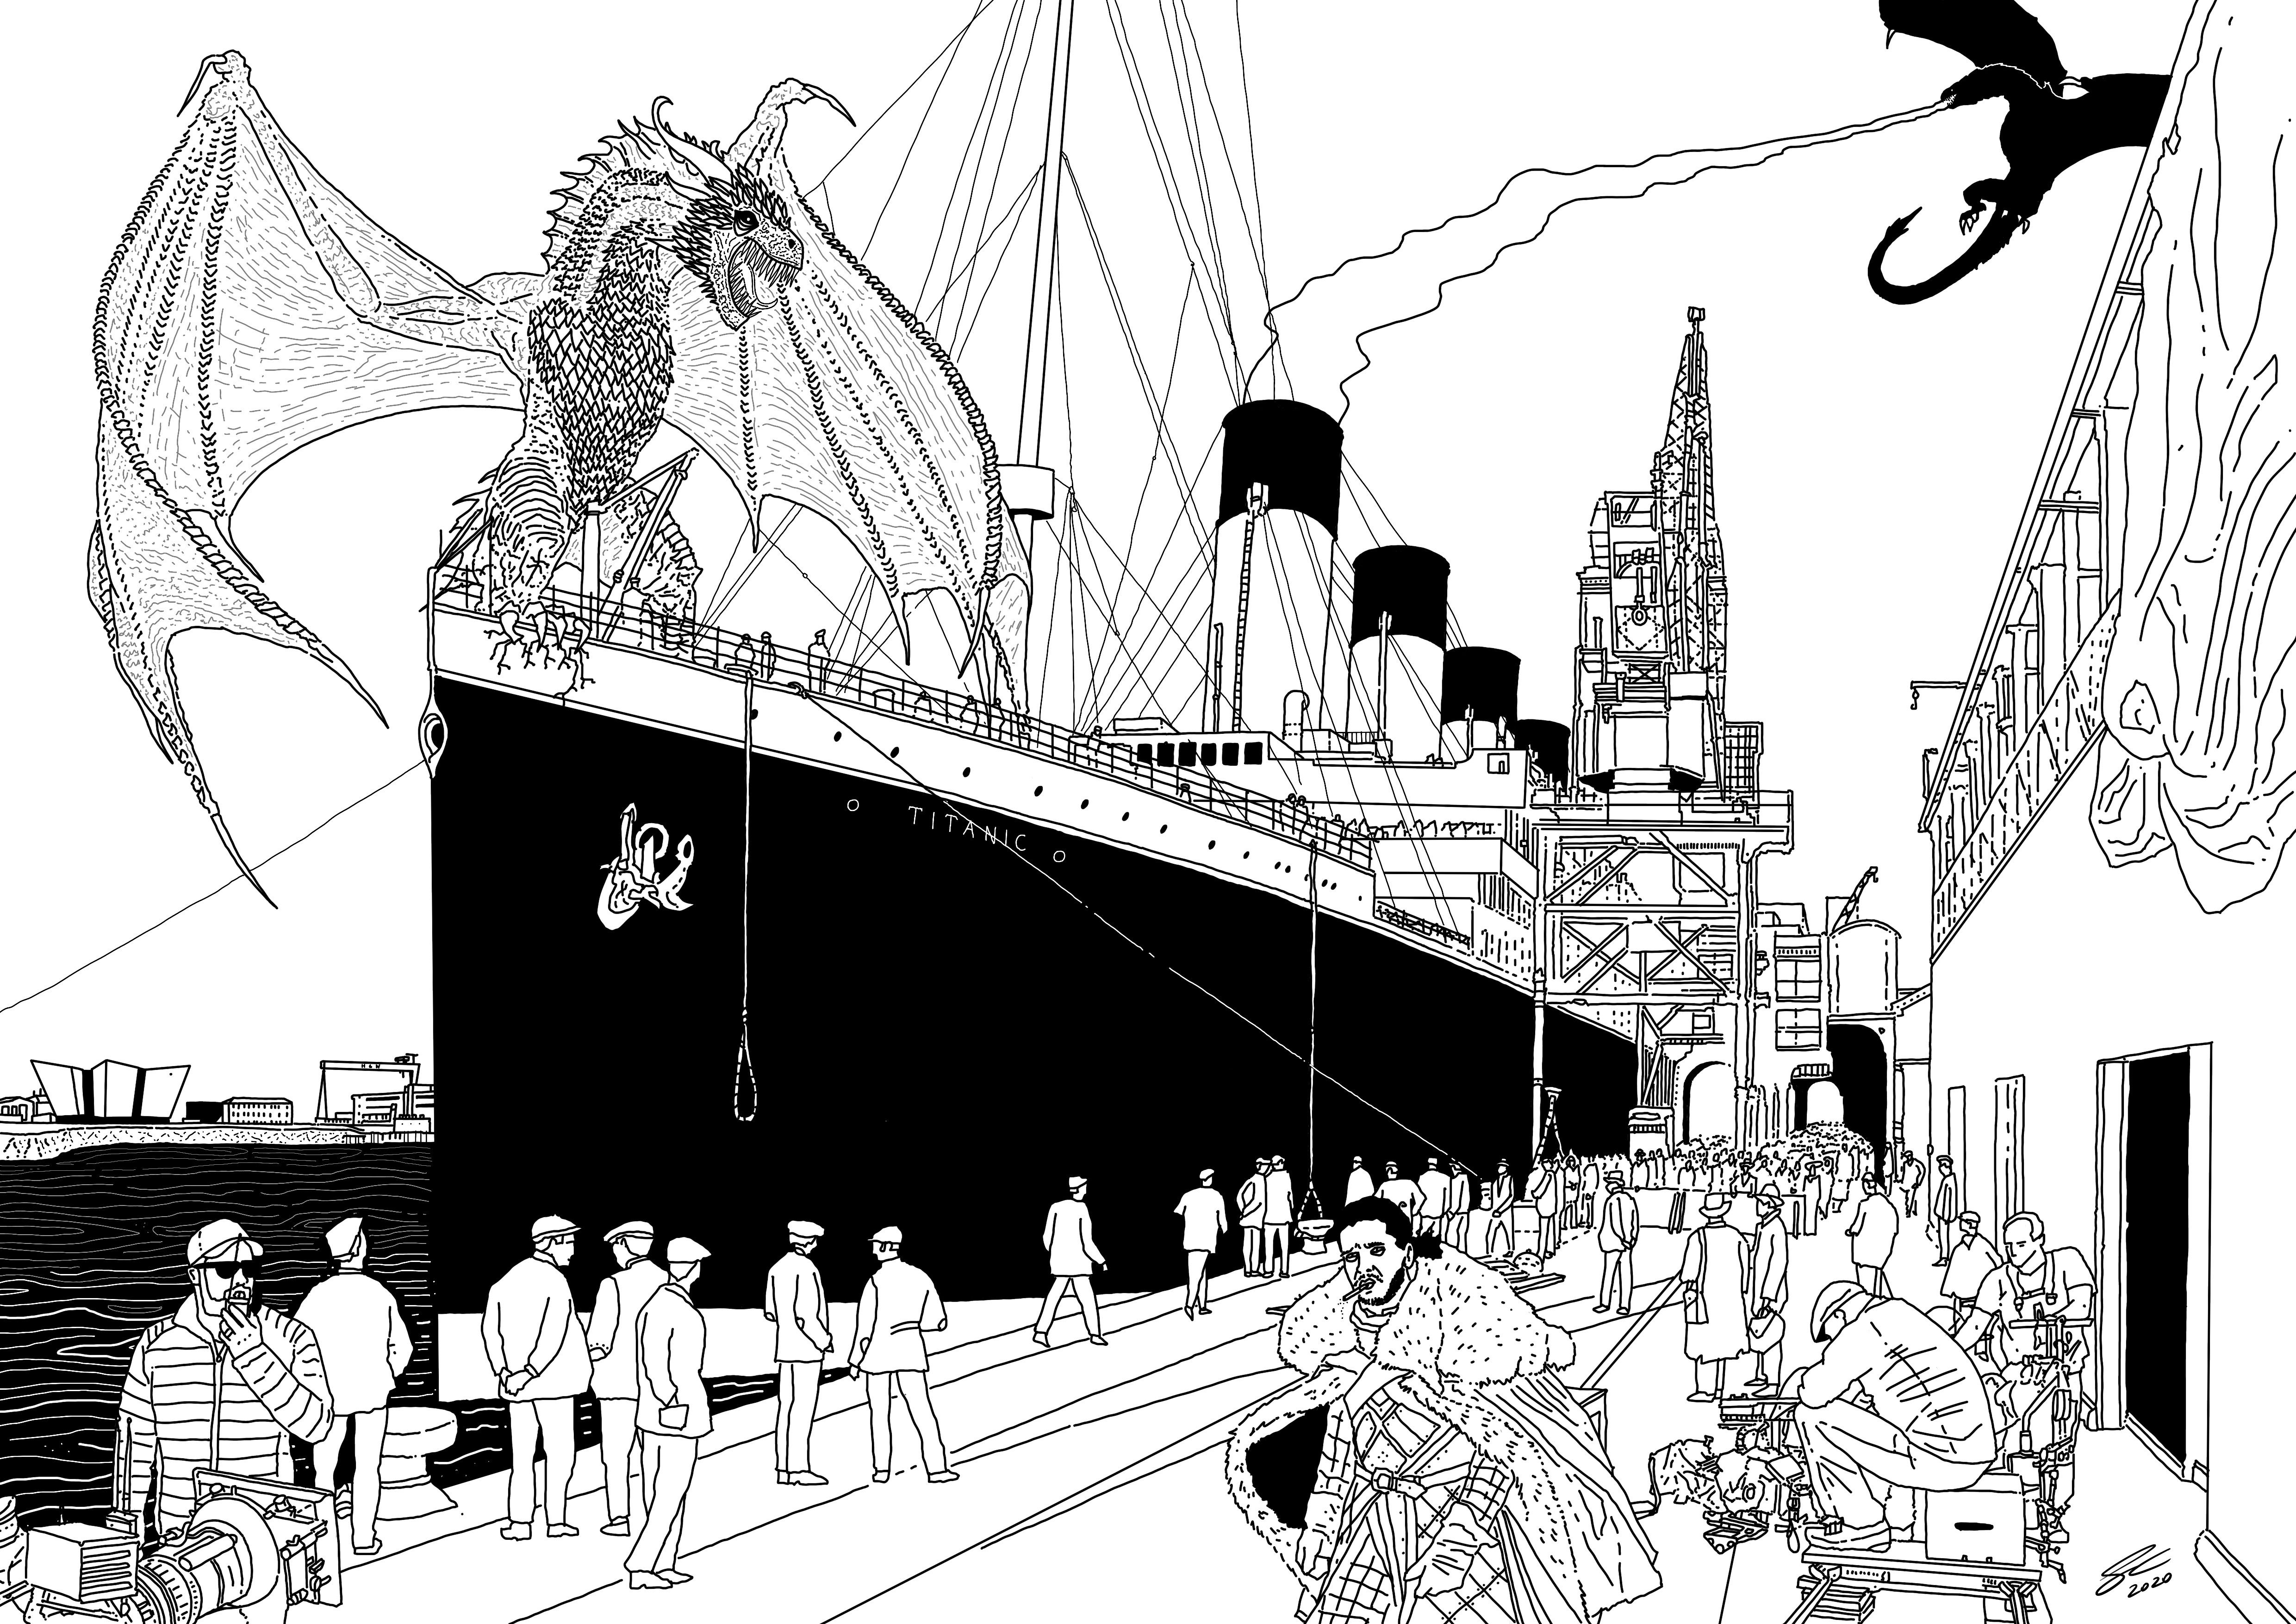 SINKING SHIP: Illustration by Benji Connell from Belfast Design Festival